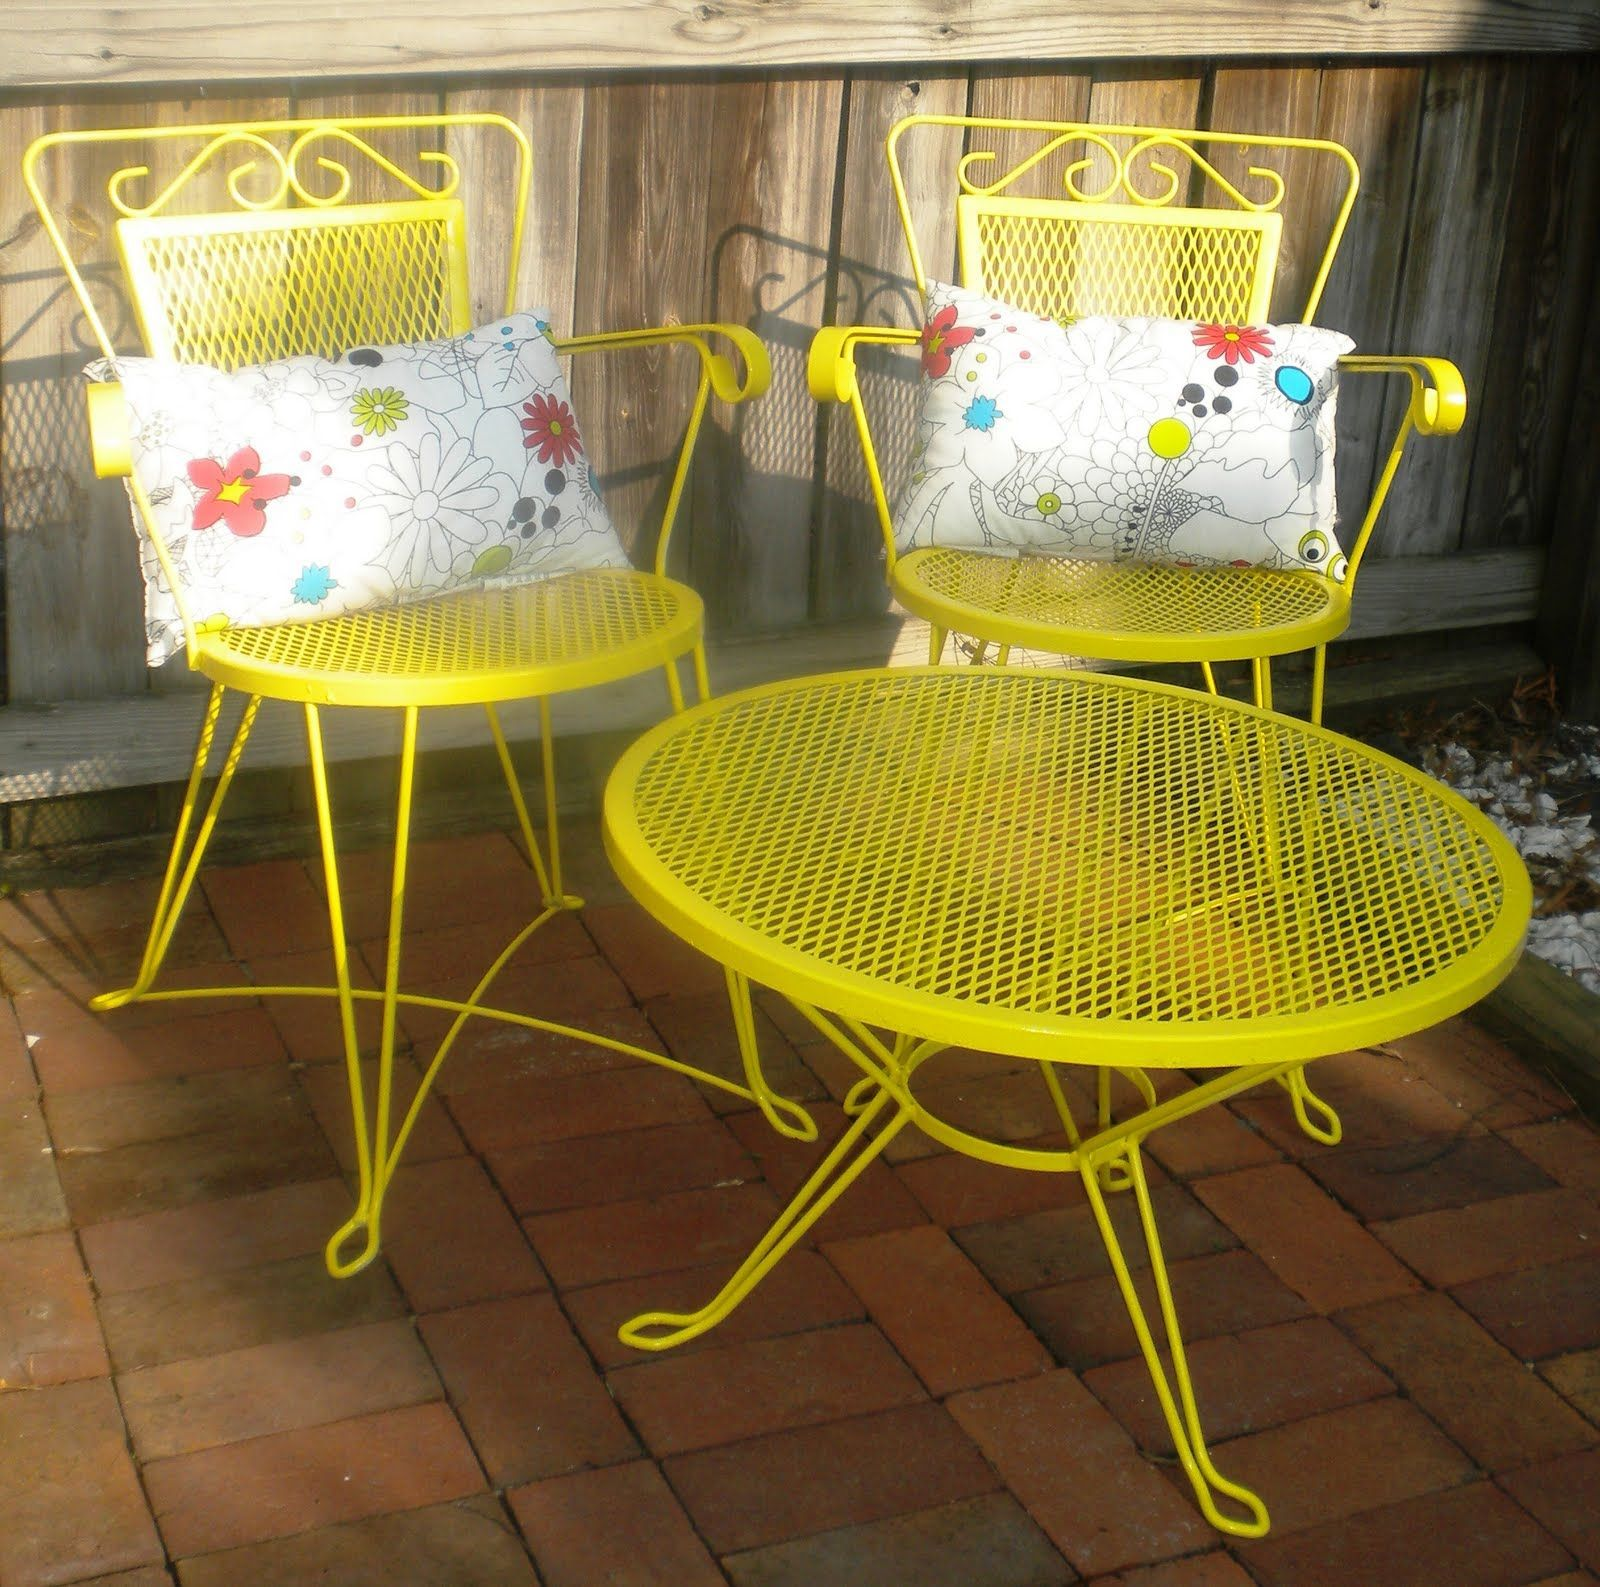 Patio Chairs Awesome  Patio chairs, Outdoor furniture makeover